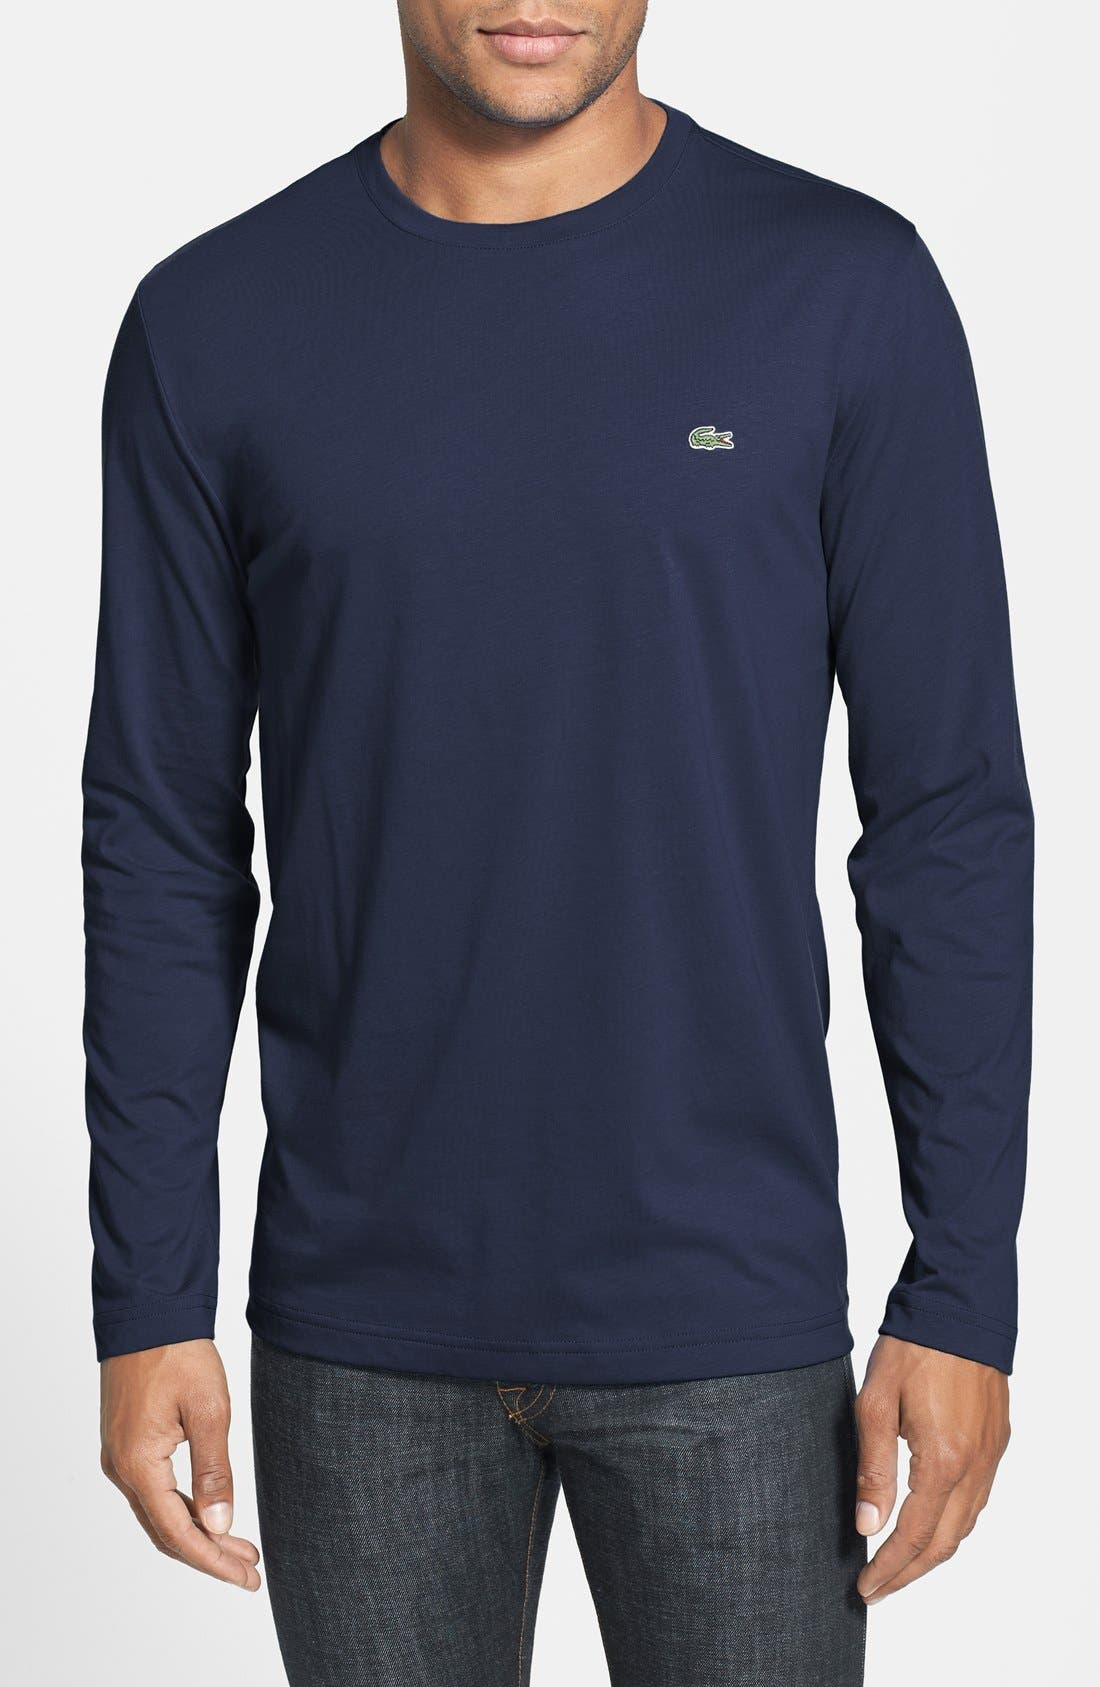 Main Image - Lacoste Long Sleeve Pima Cotton T-Shirt